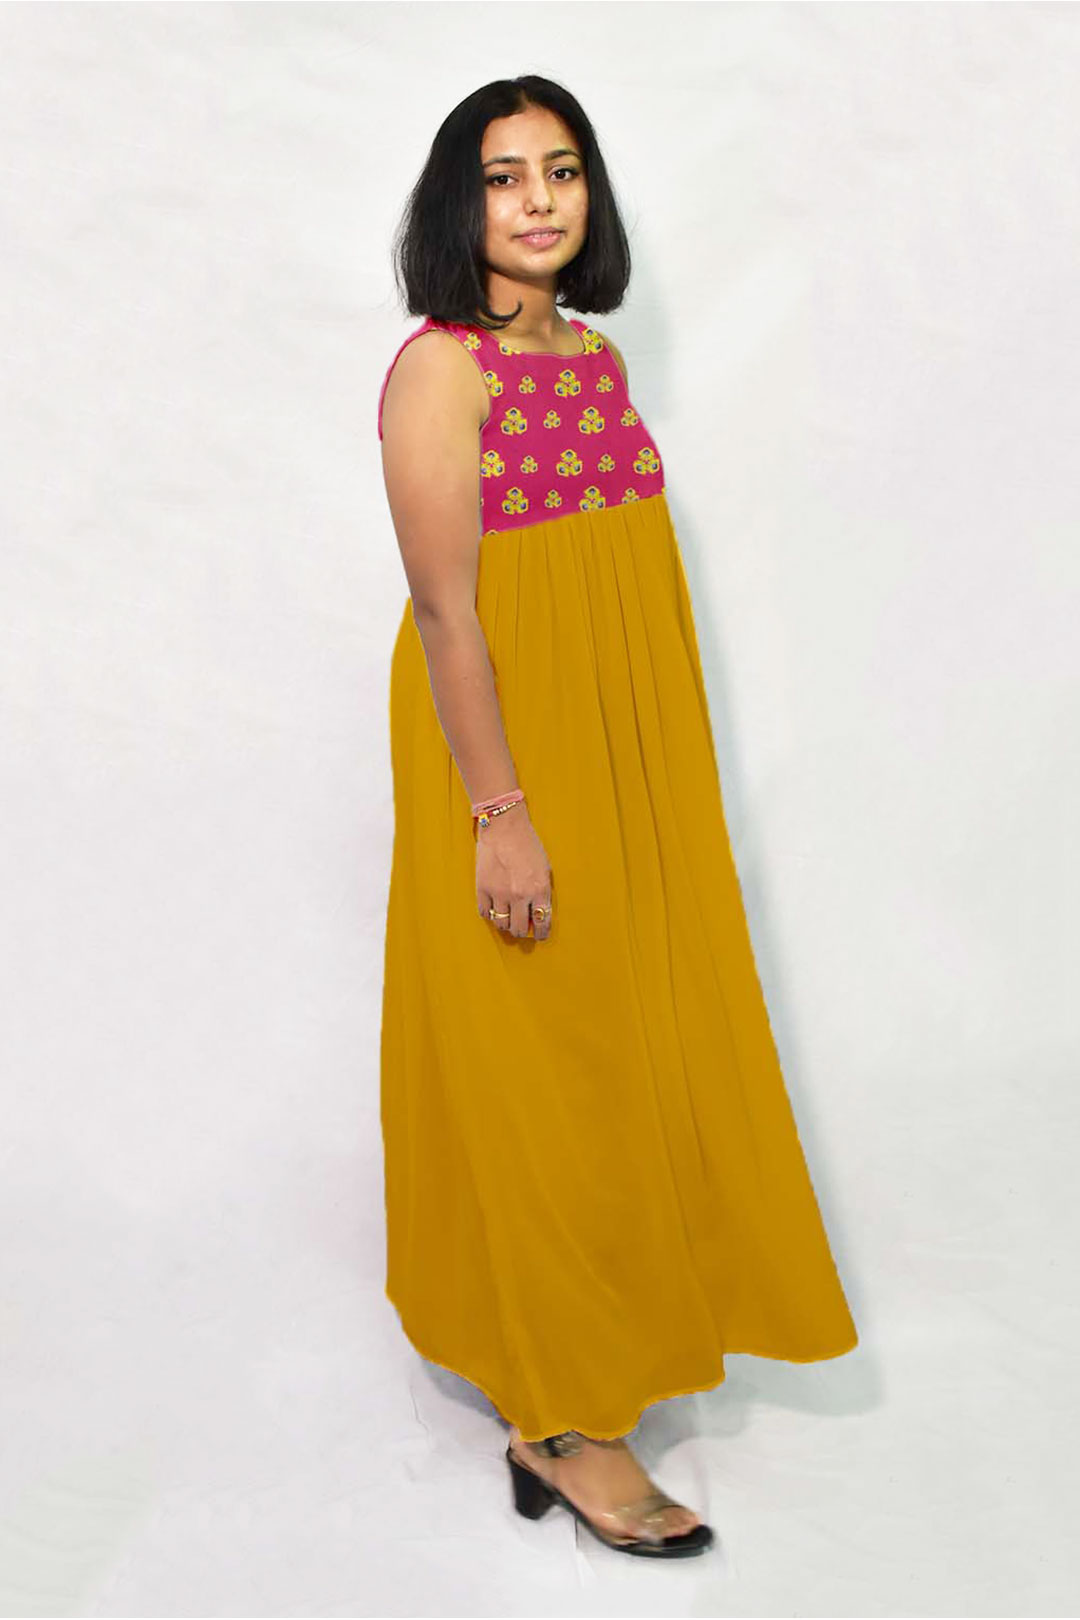 Georgette Maxi Dress – Red Spinach